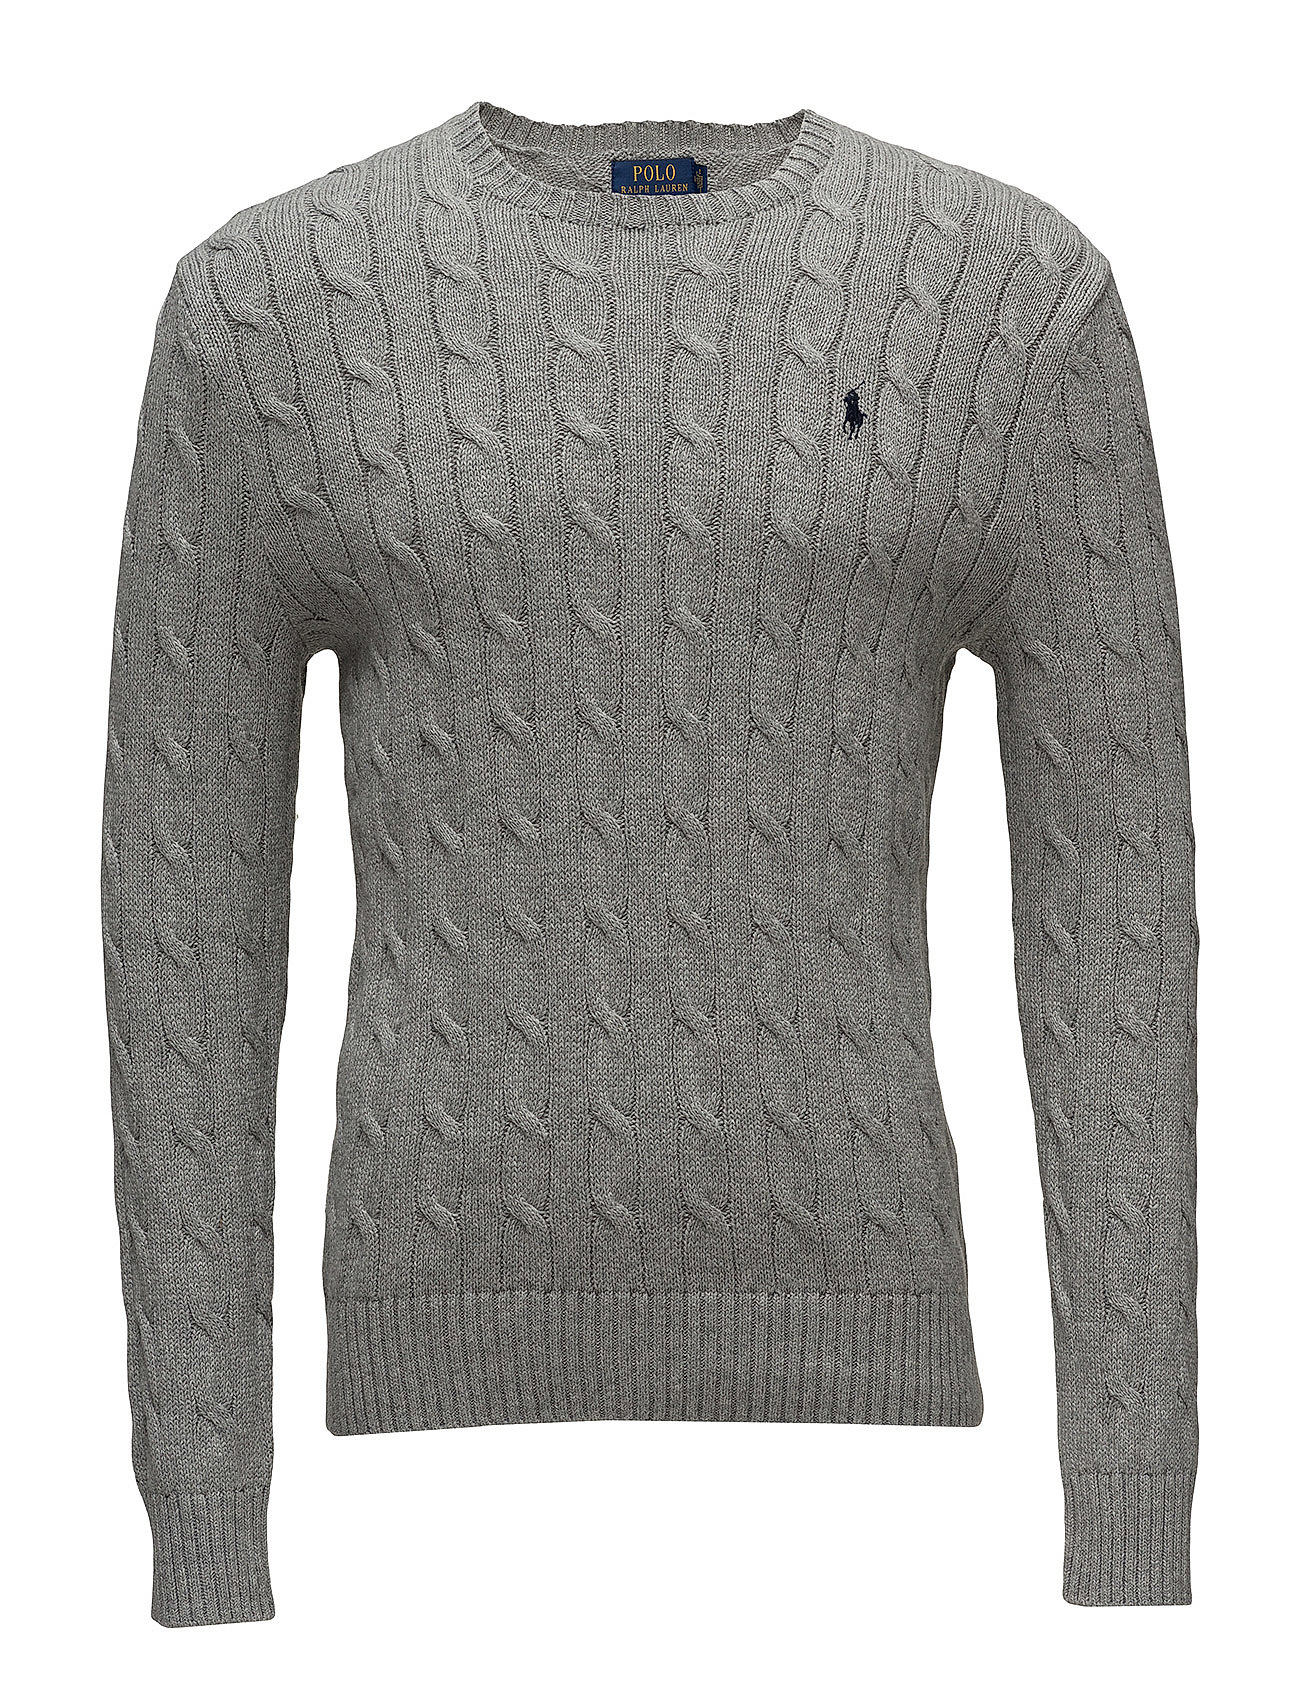 Polo Ralph Lauren Cable-Knit Cotton Sweater - FAWN GREY HEATHER